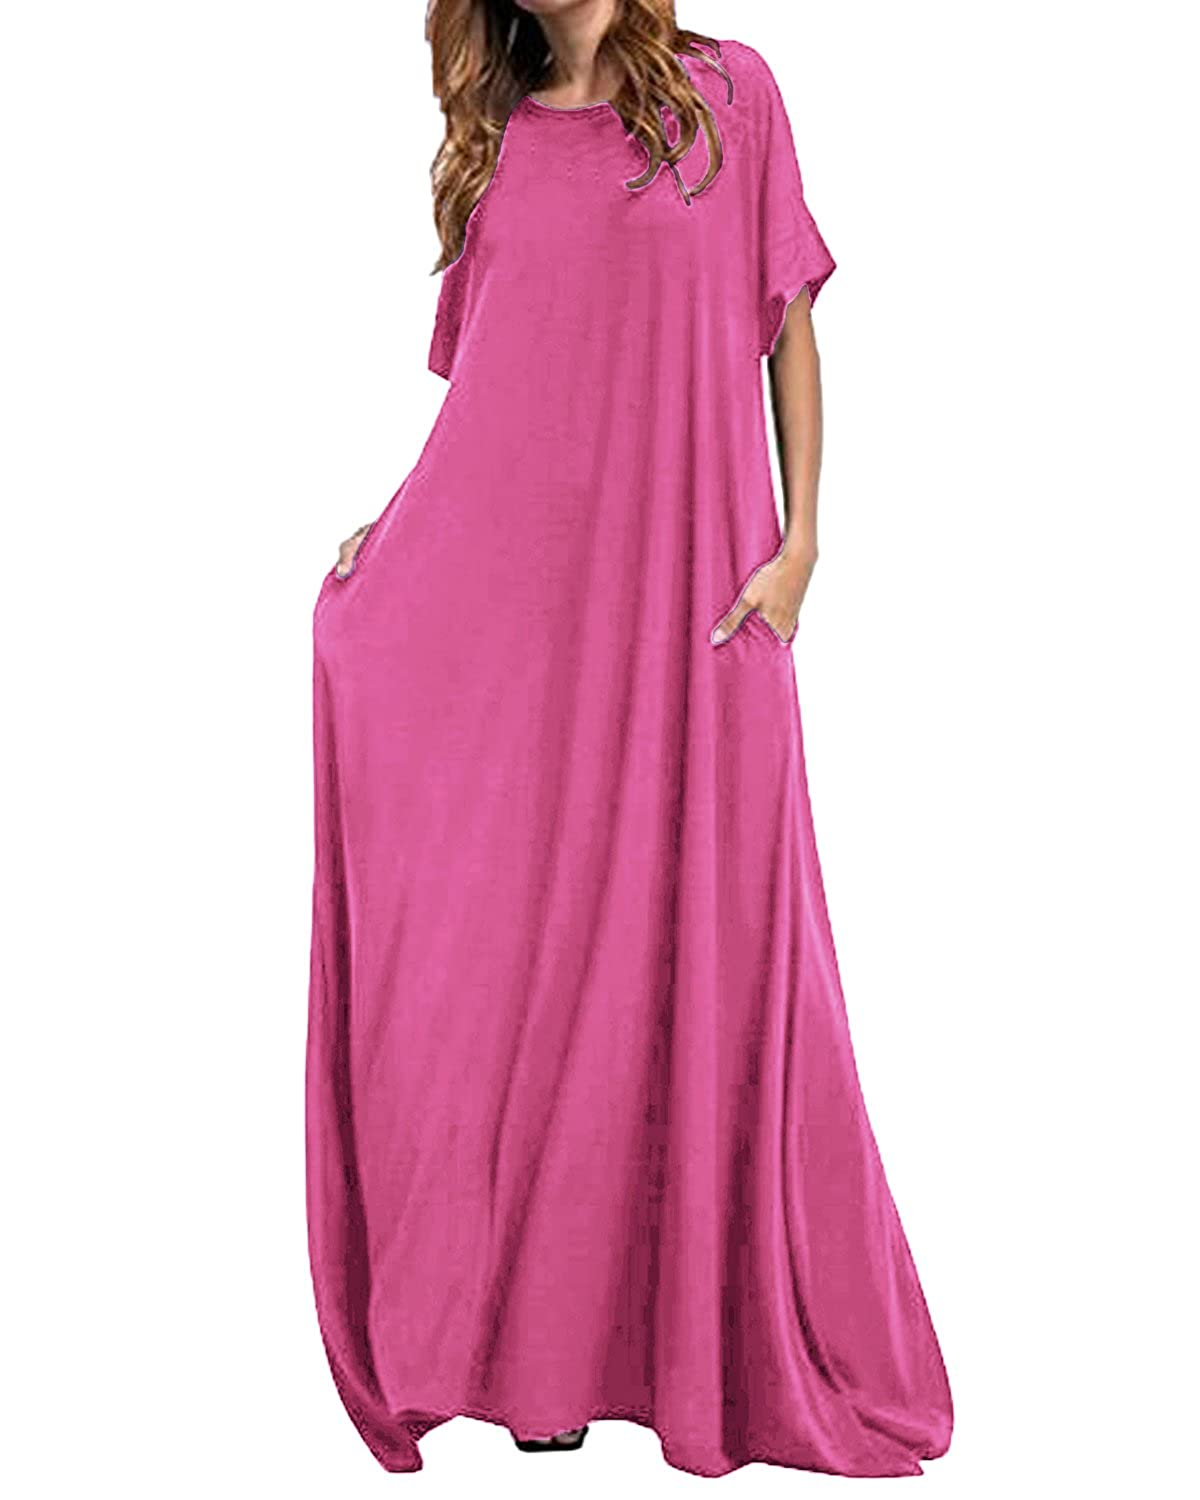 206f815a2e Chinabrands.com: Dropshipping & Wholesale cheap Kidsform Women Maxi Dress  Loose Round Neck Short Sleeve Long online.